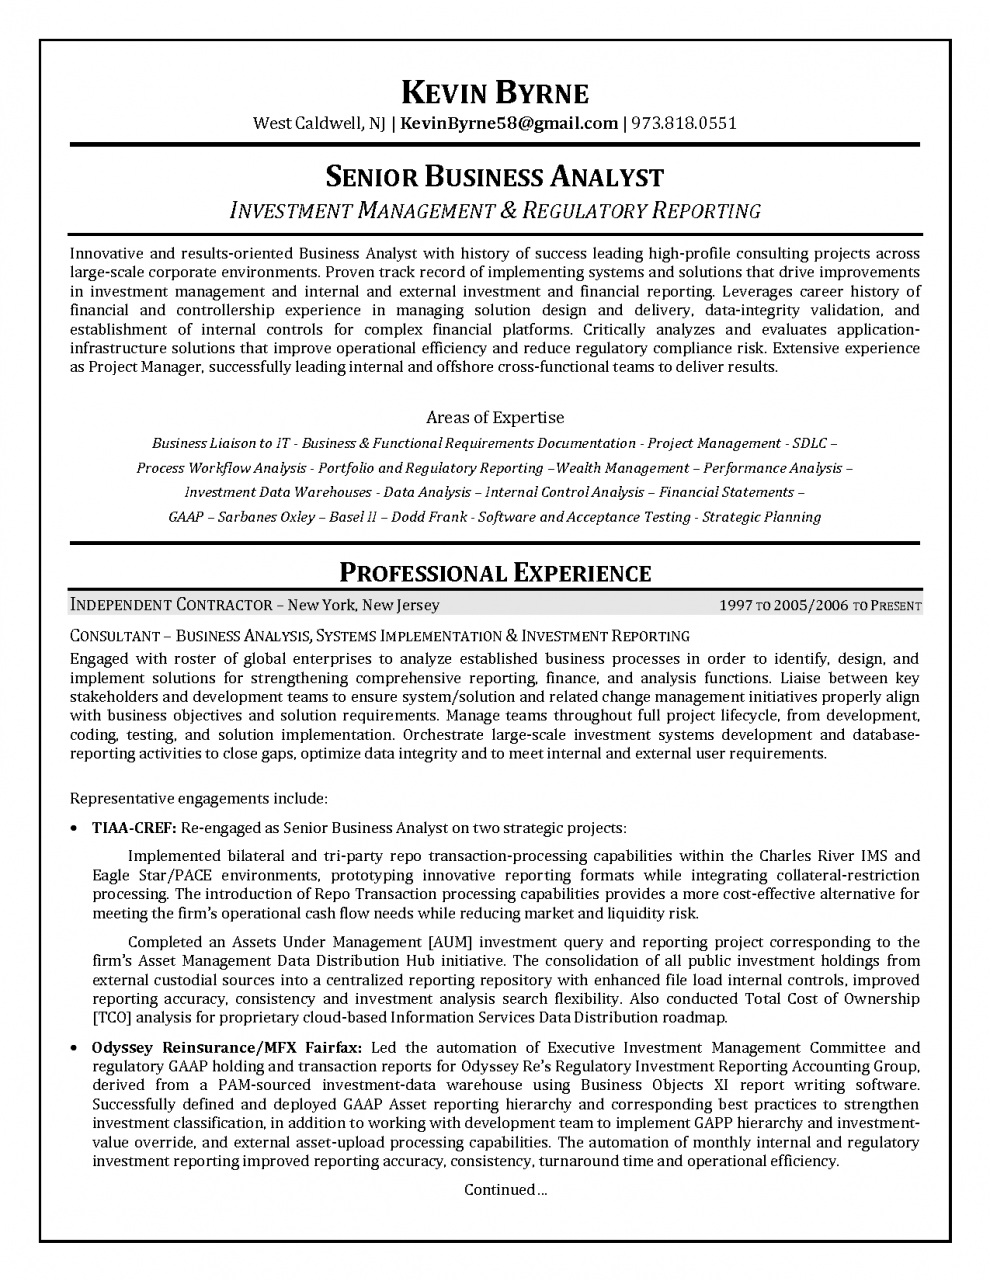 resume senior business analyst resume format business analyst senior resume workbloom 135933271 sample resume for business objects resume business analyst